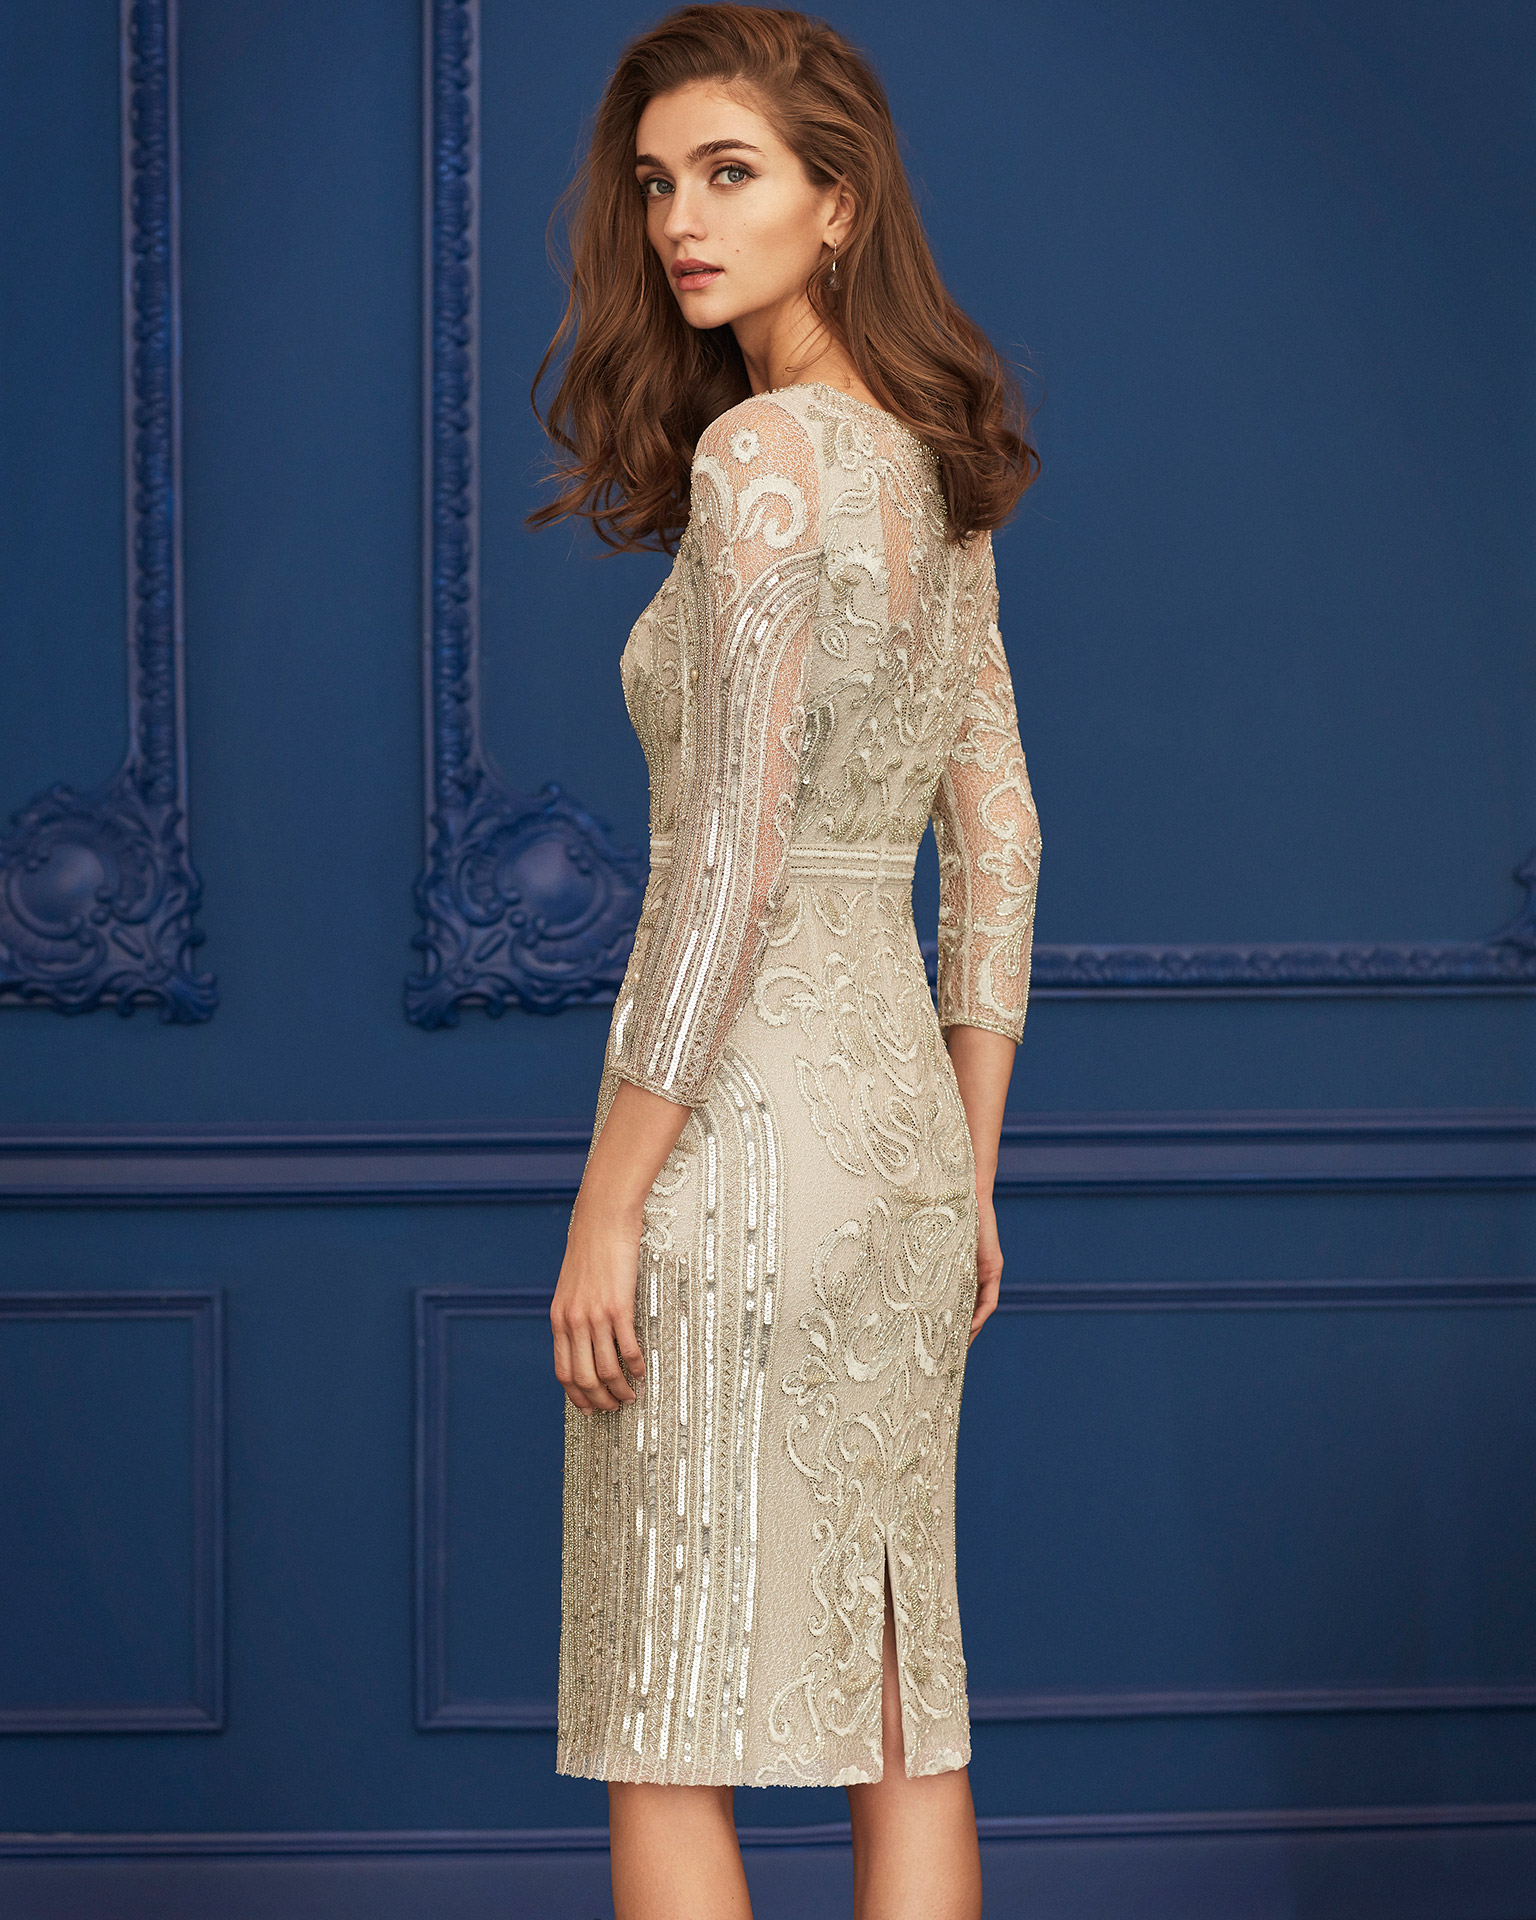 Beaded cocktail dress. V-neckline with three-quarter sleeves. 2020 MARFIL BARCELONA Collection.